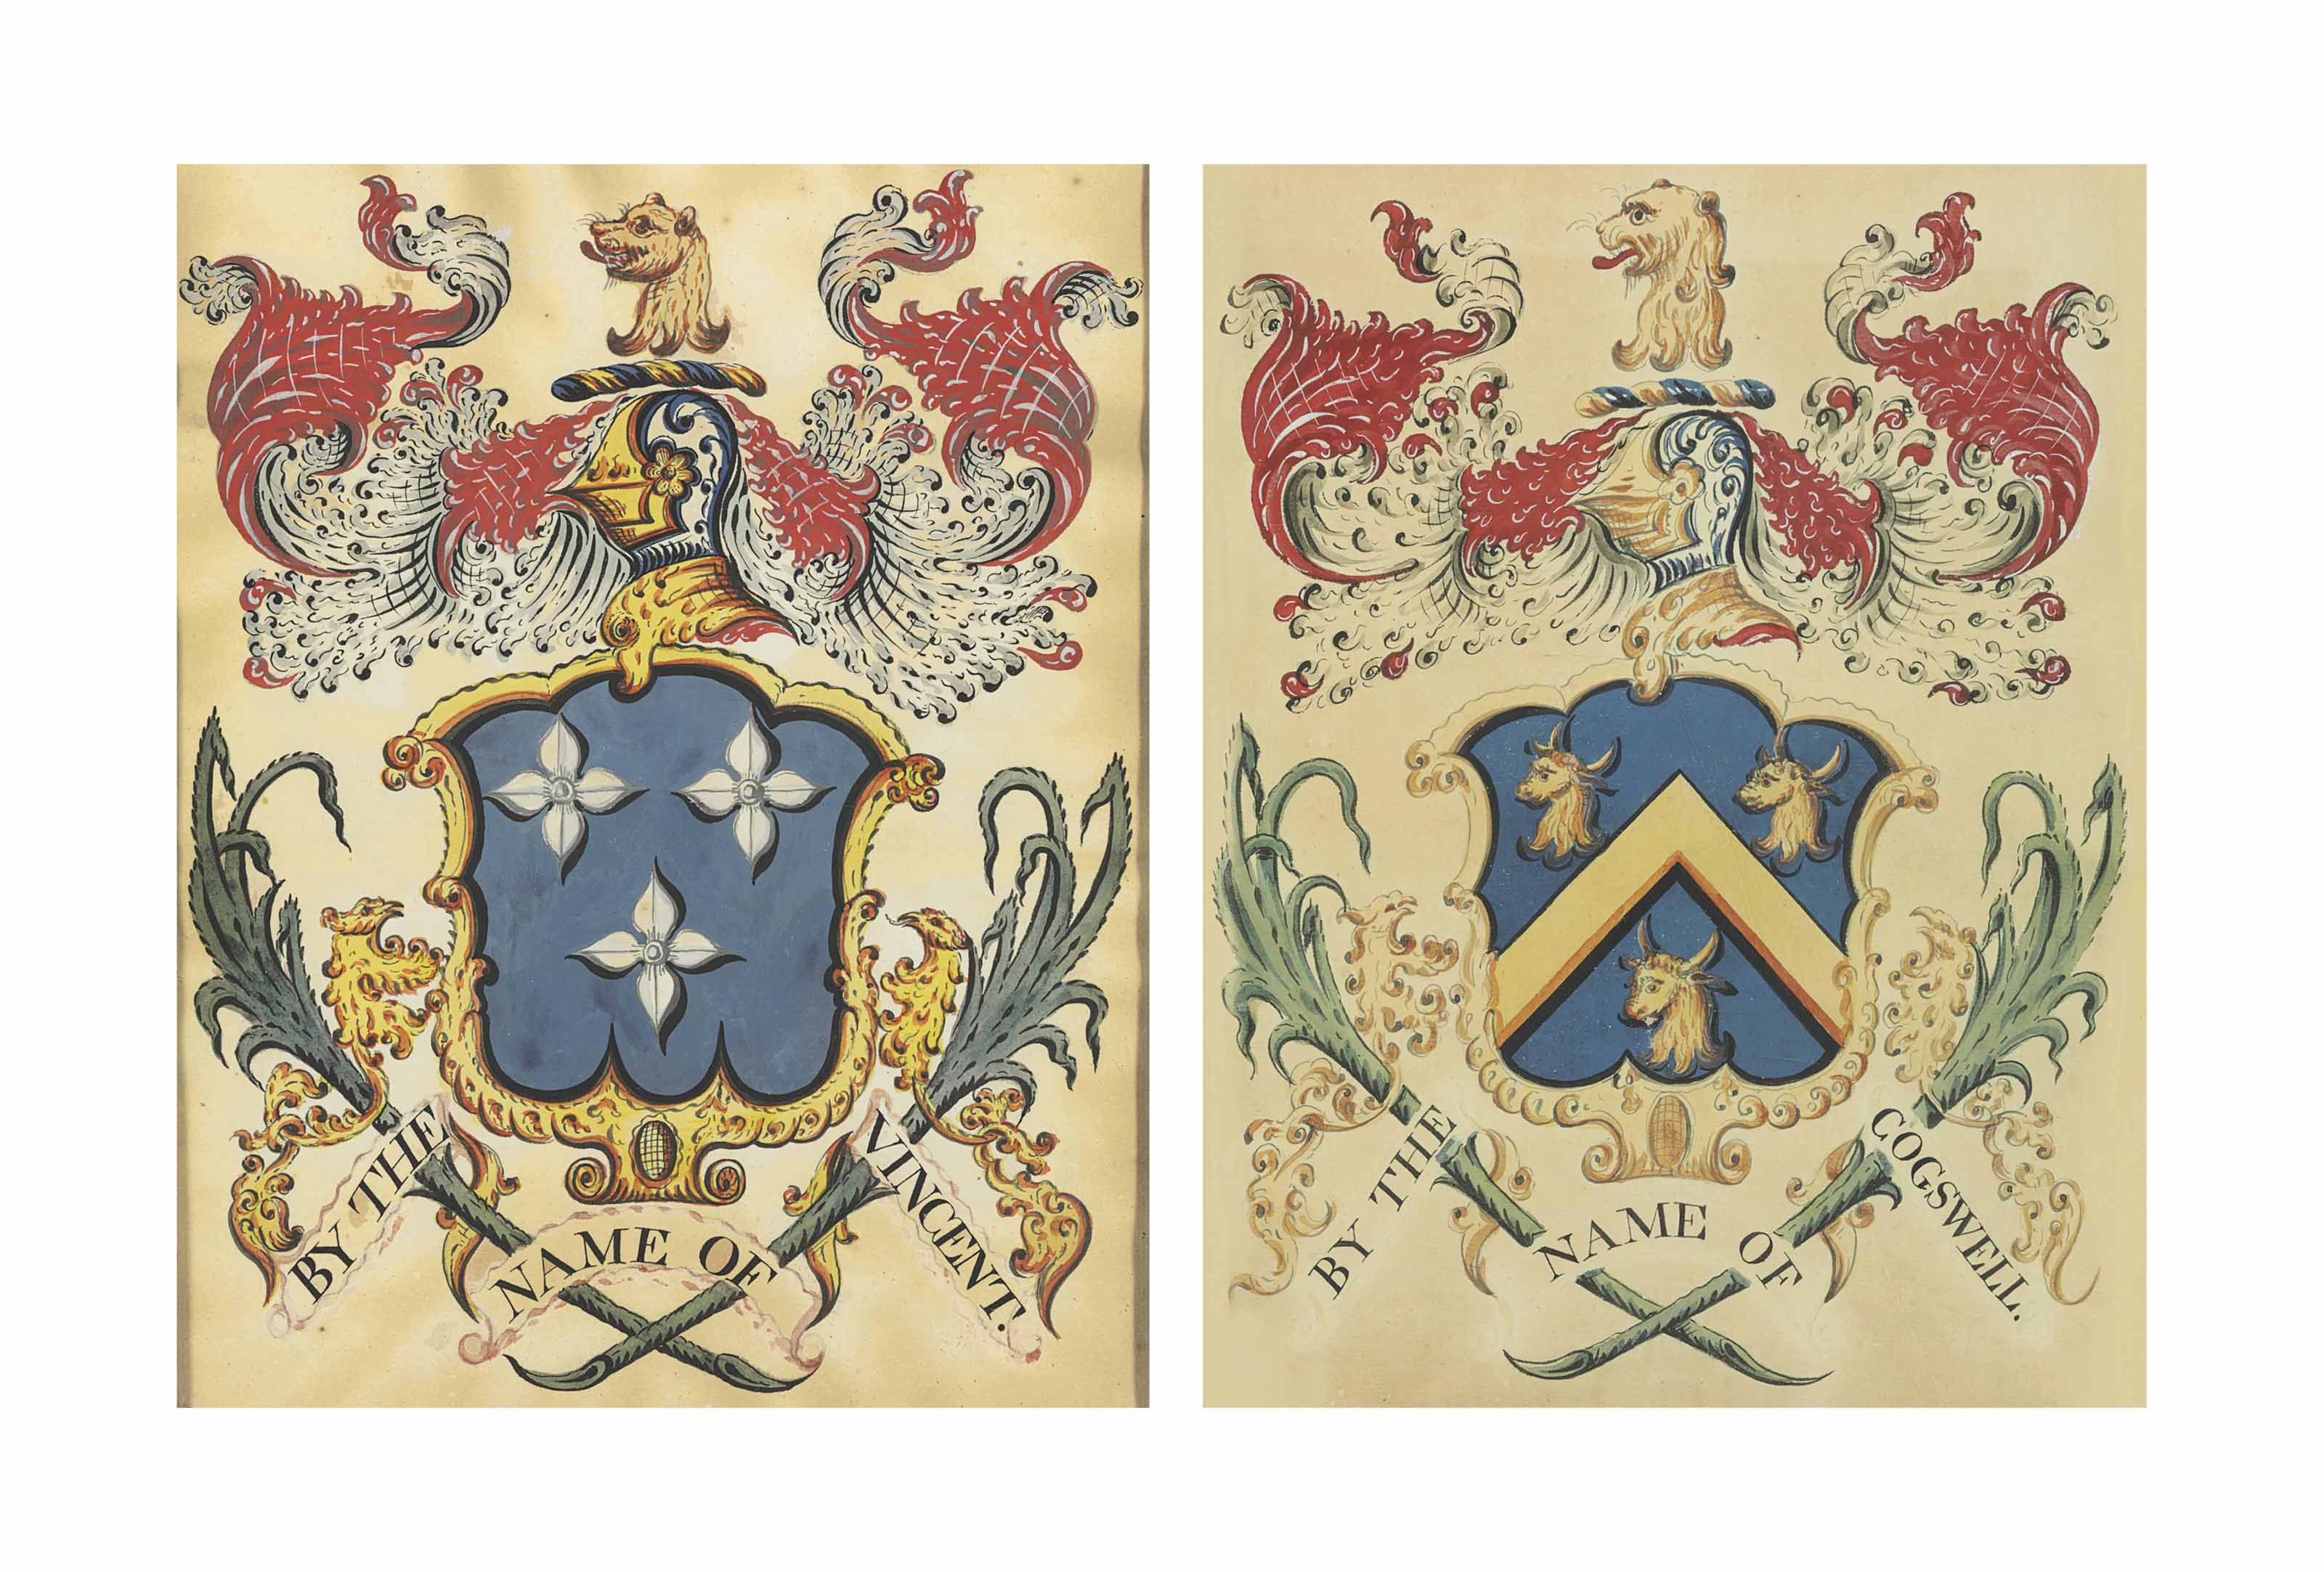 TWO WATERCOLOR AND GRAPHITE ON PAPER COATS OF ARMS OF THE COGSWELL AND VINCENT FAMILIES